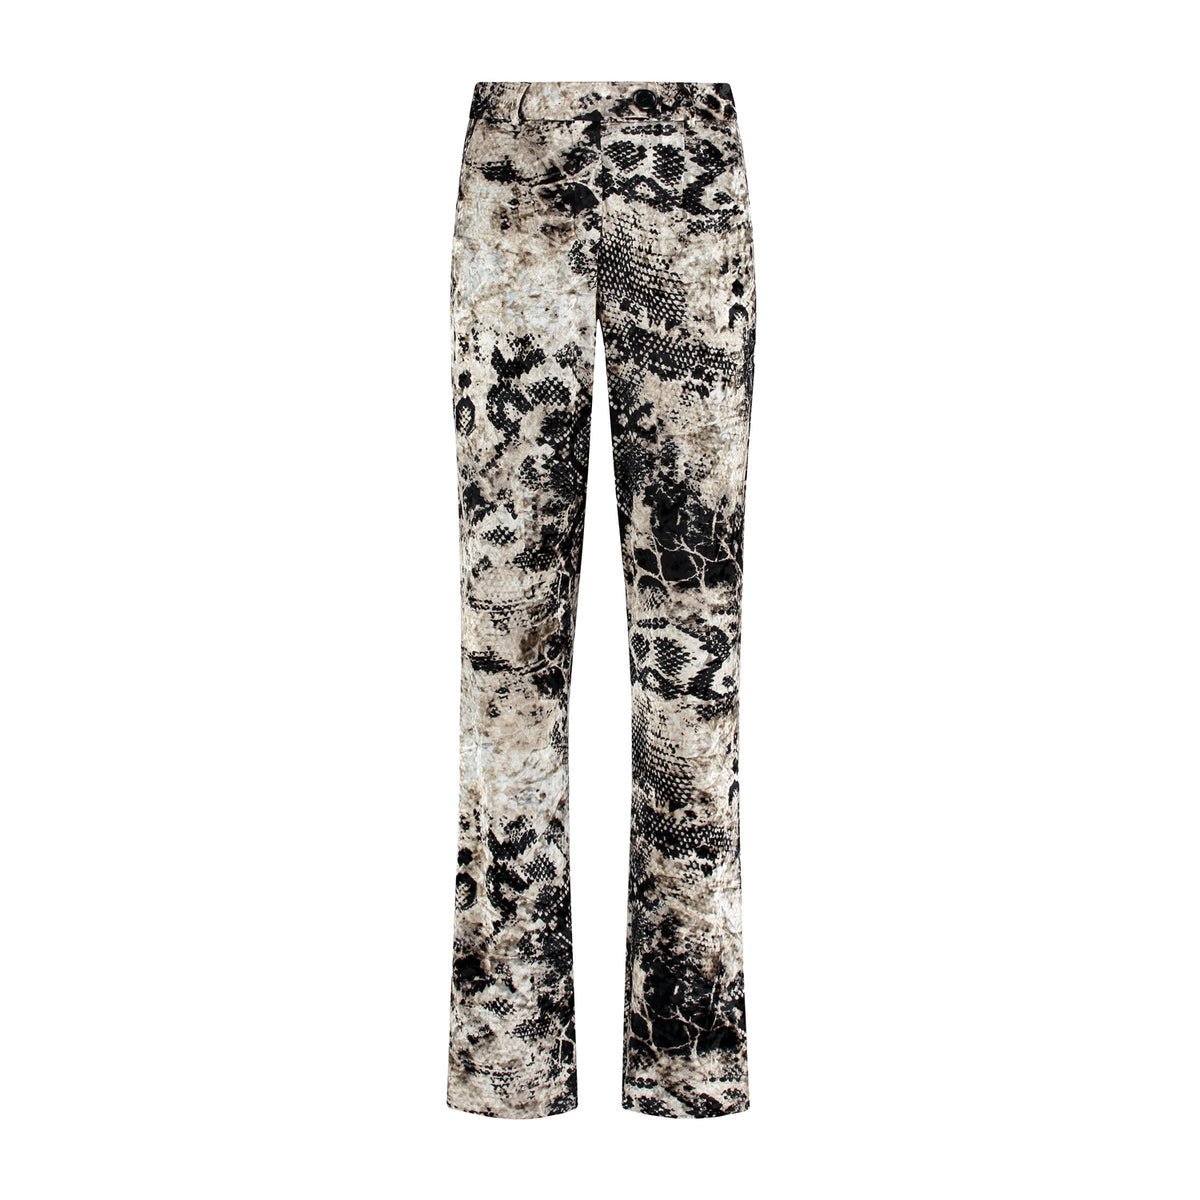 The Cobra Trousers